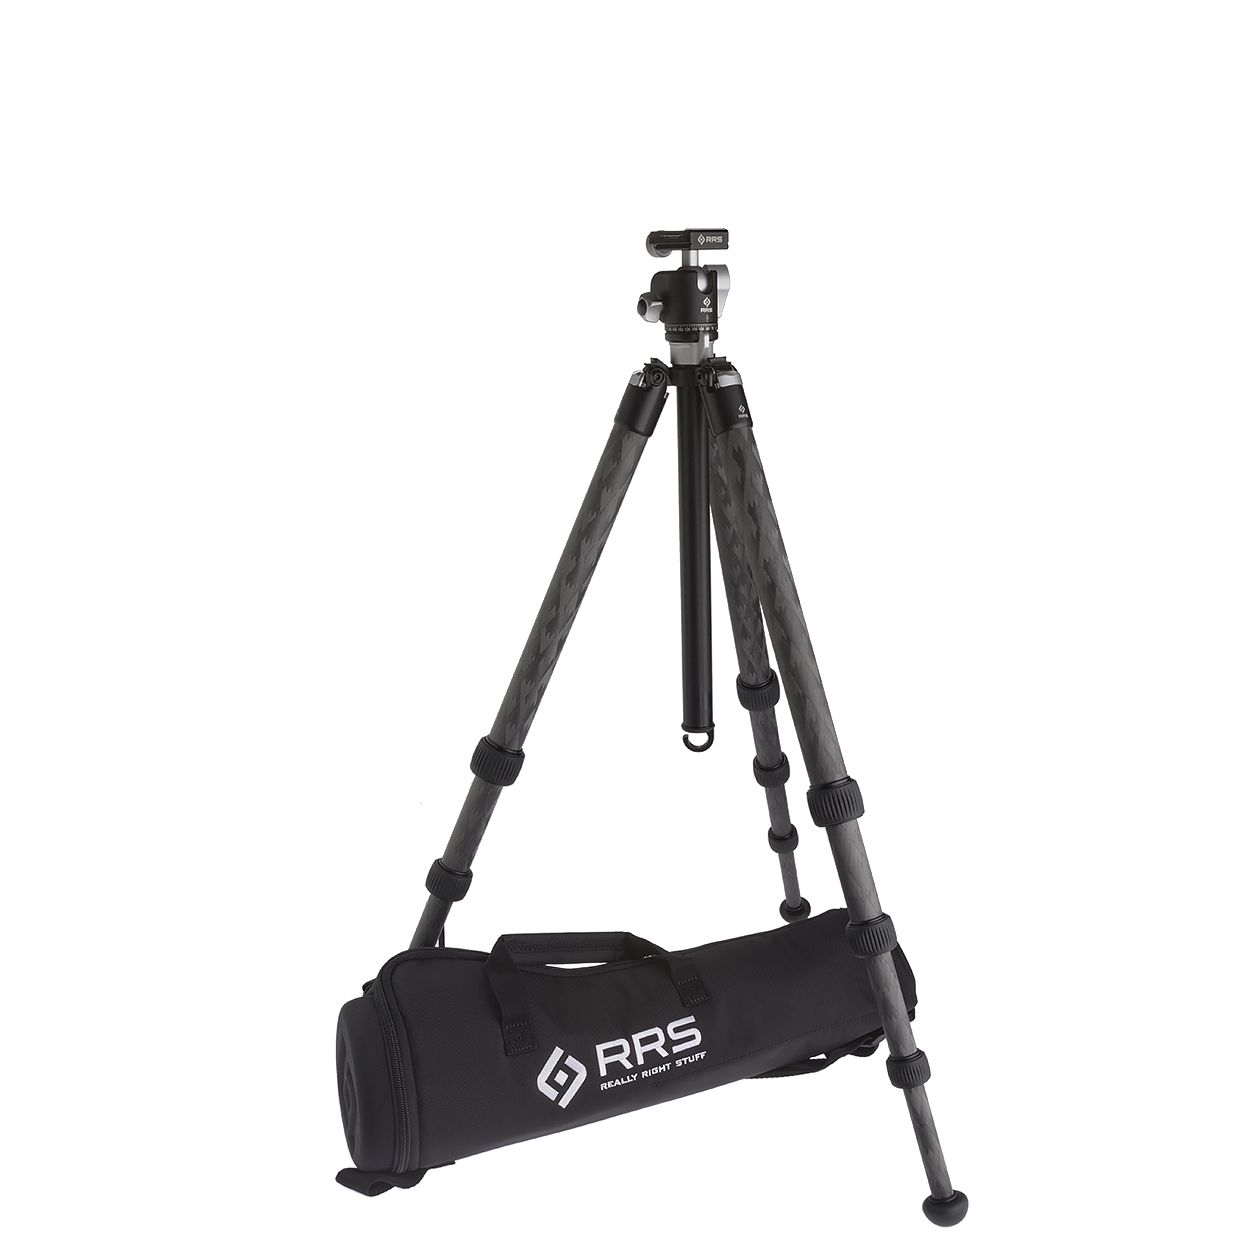 Tripod Packages